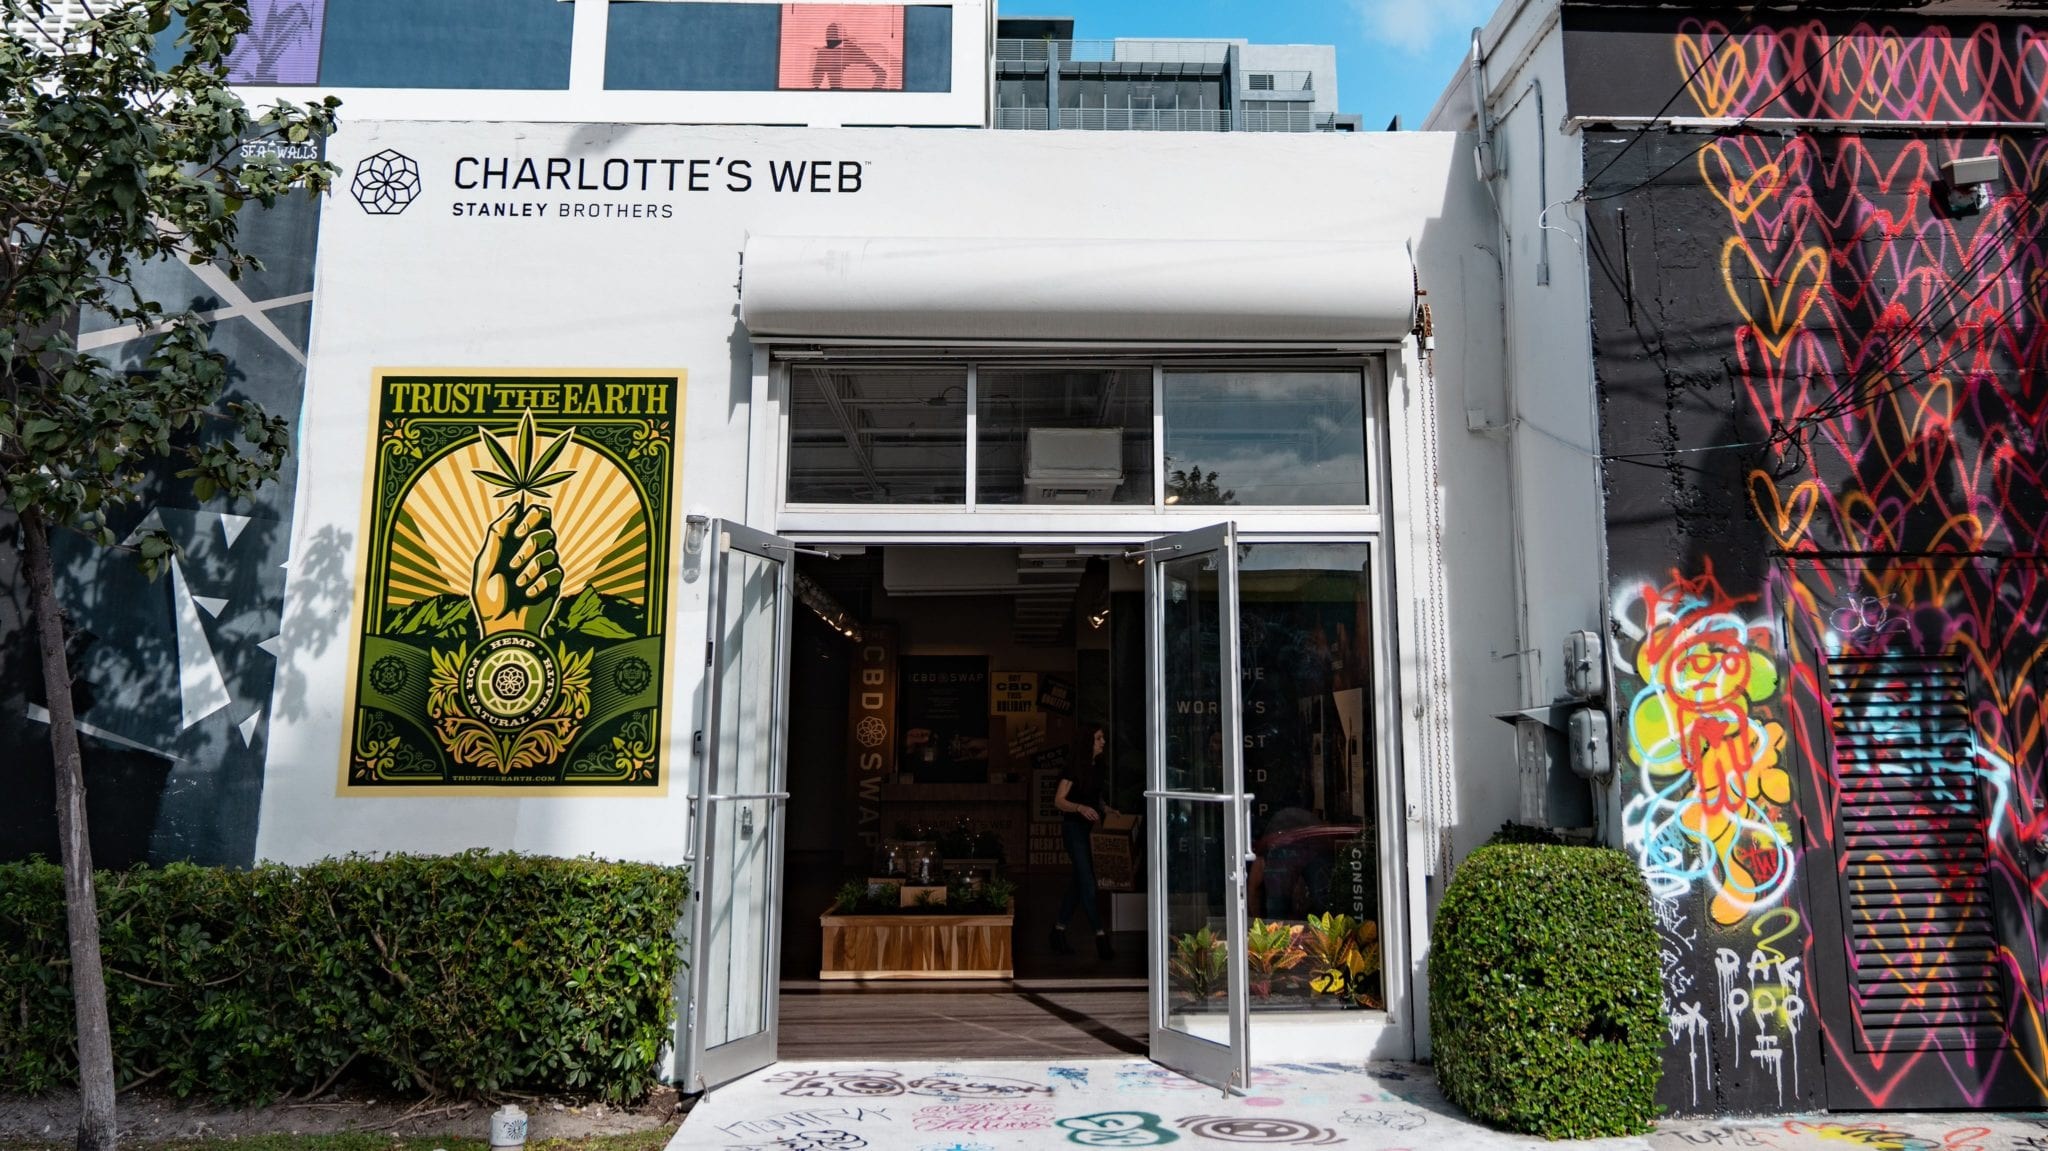 Charlotte's Web bounces back in Q4